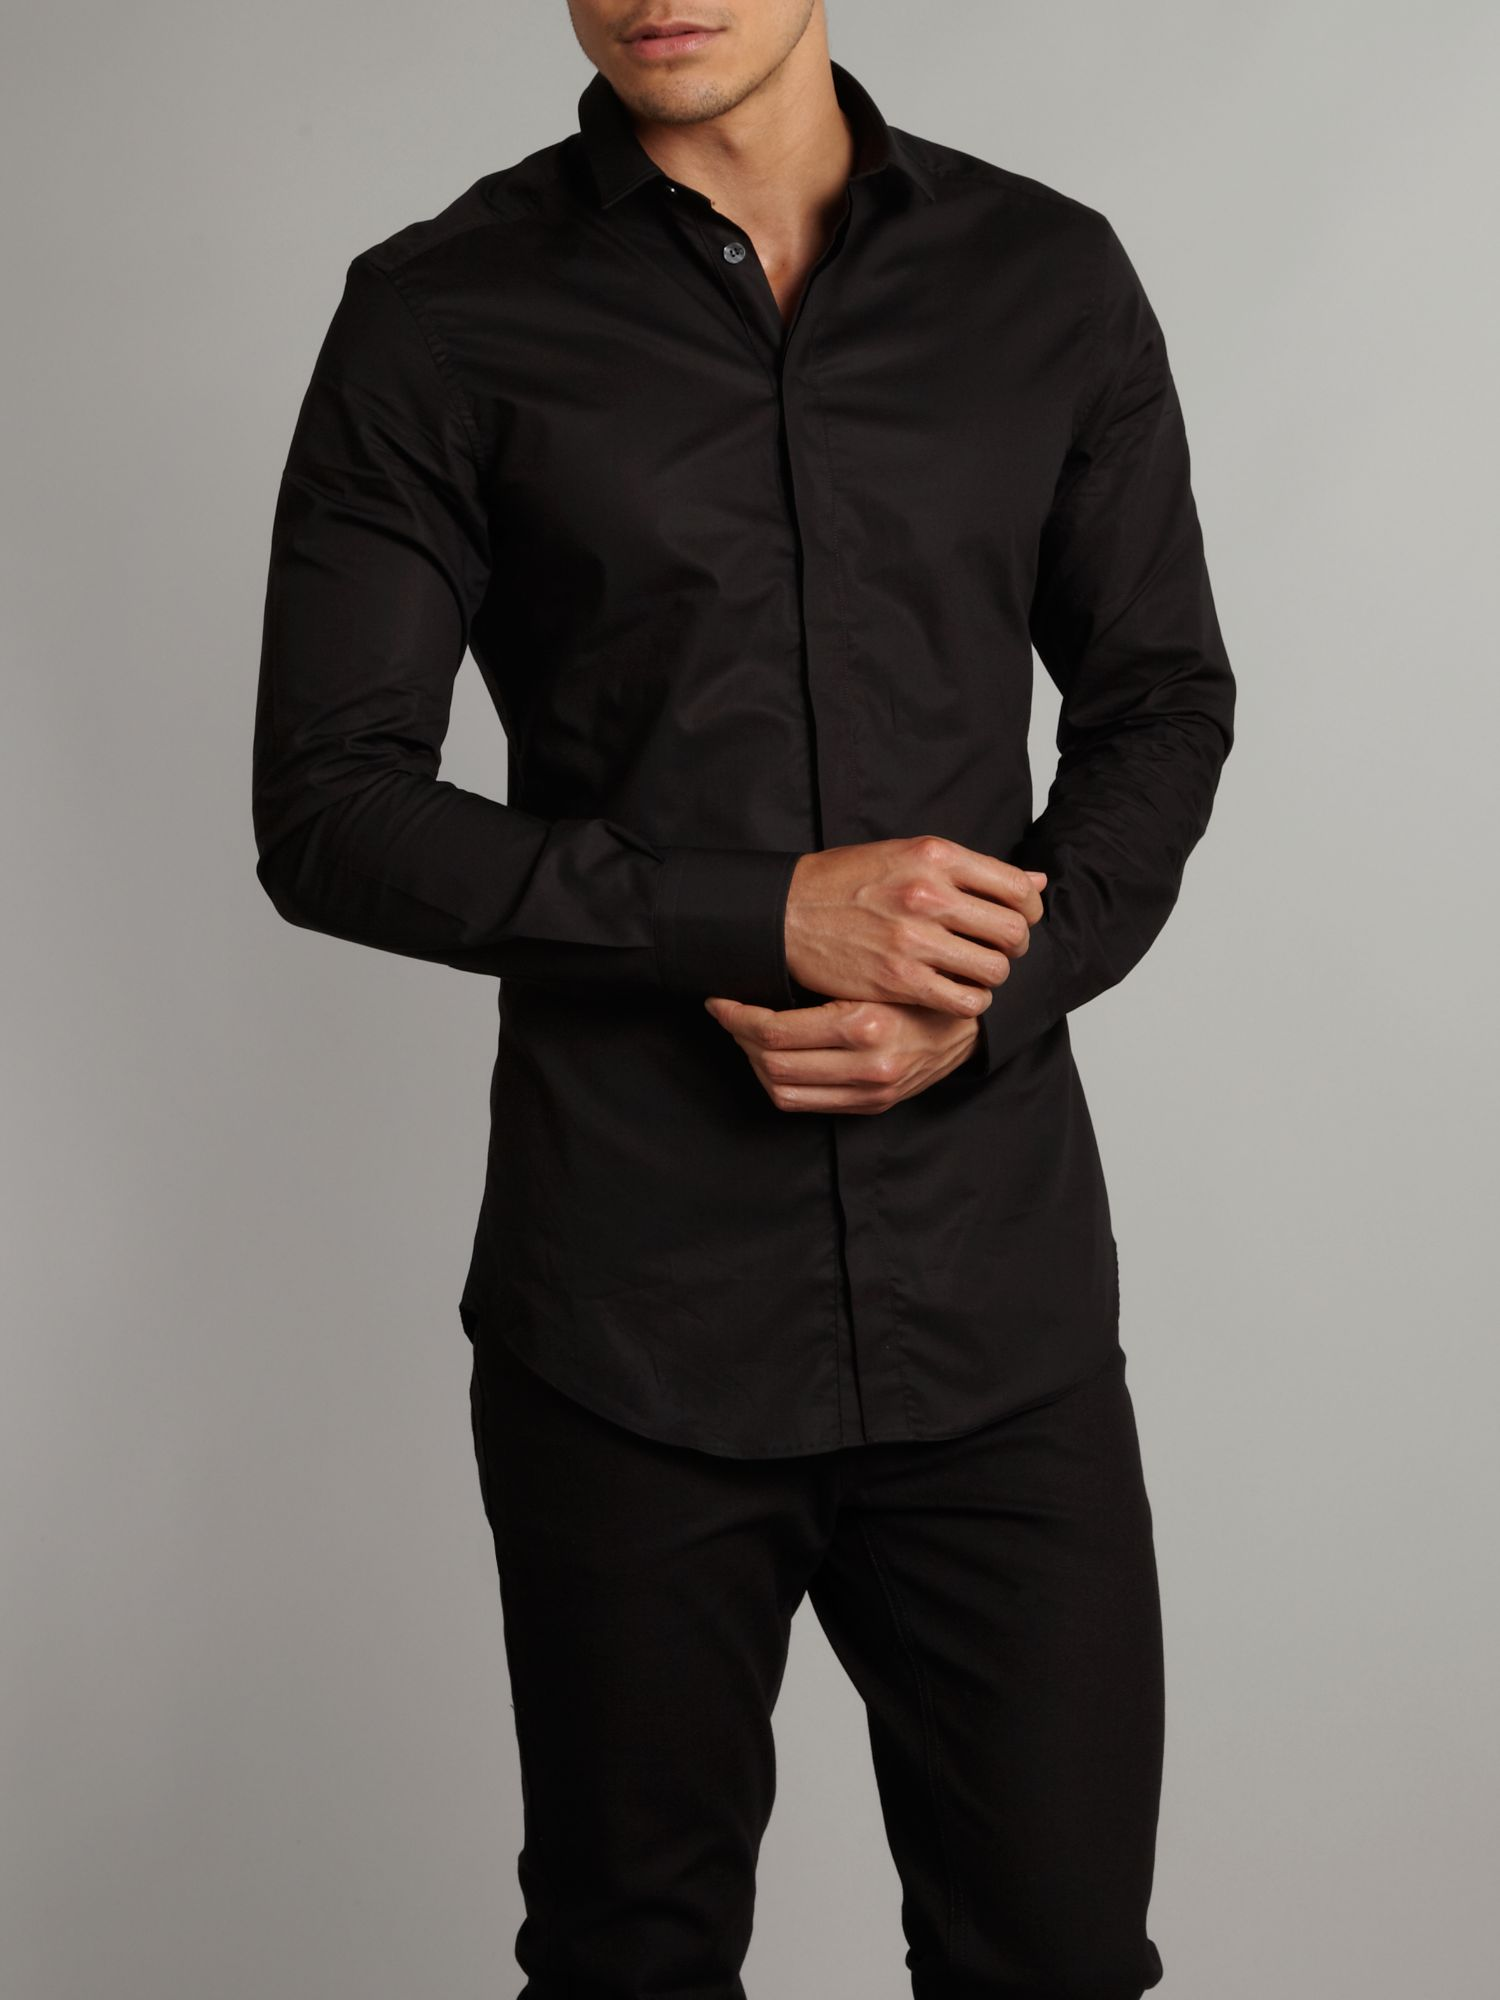 Dolce Gabbana Button Up Shirt In Black For Men Lyst